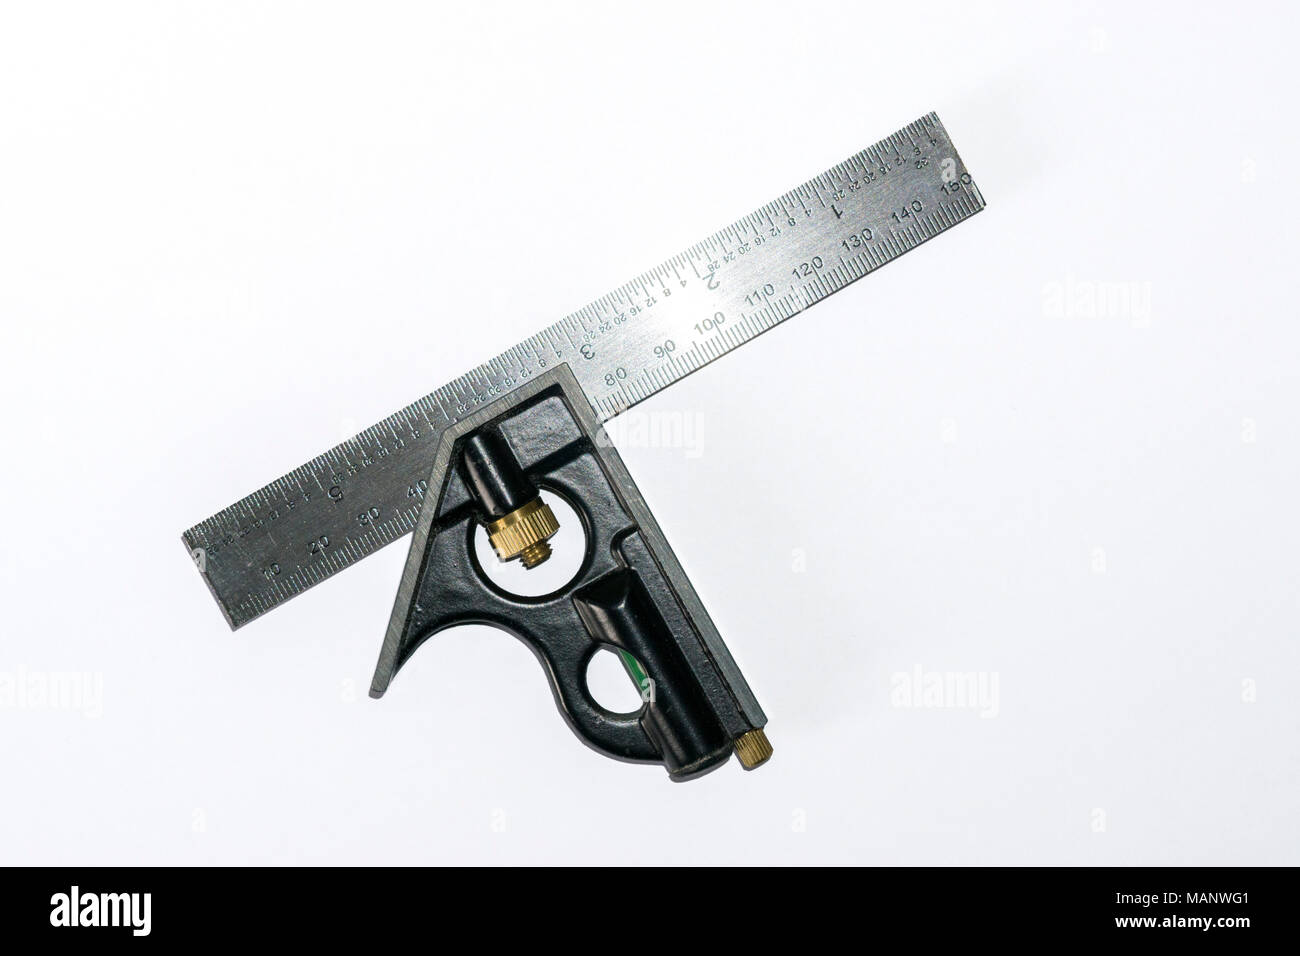 Engineers combination square - Stock Image